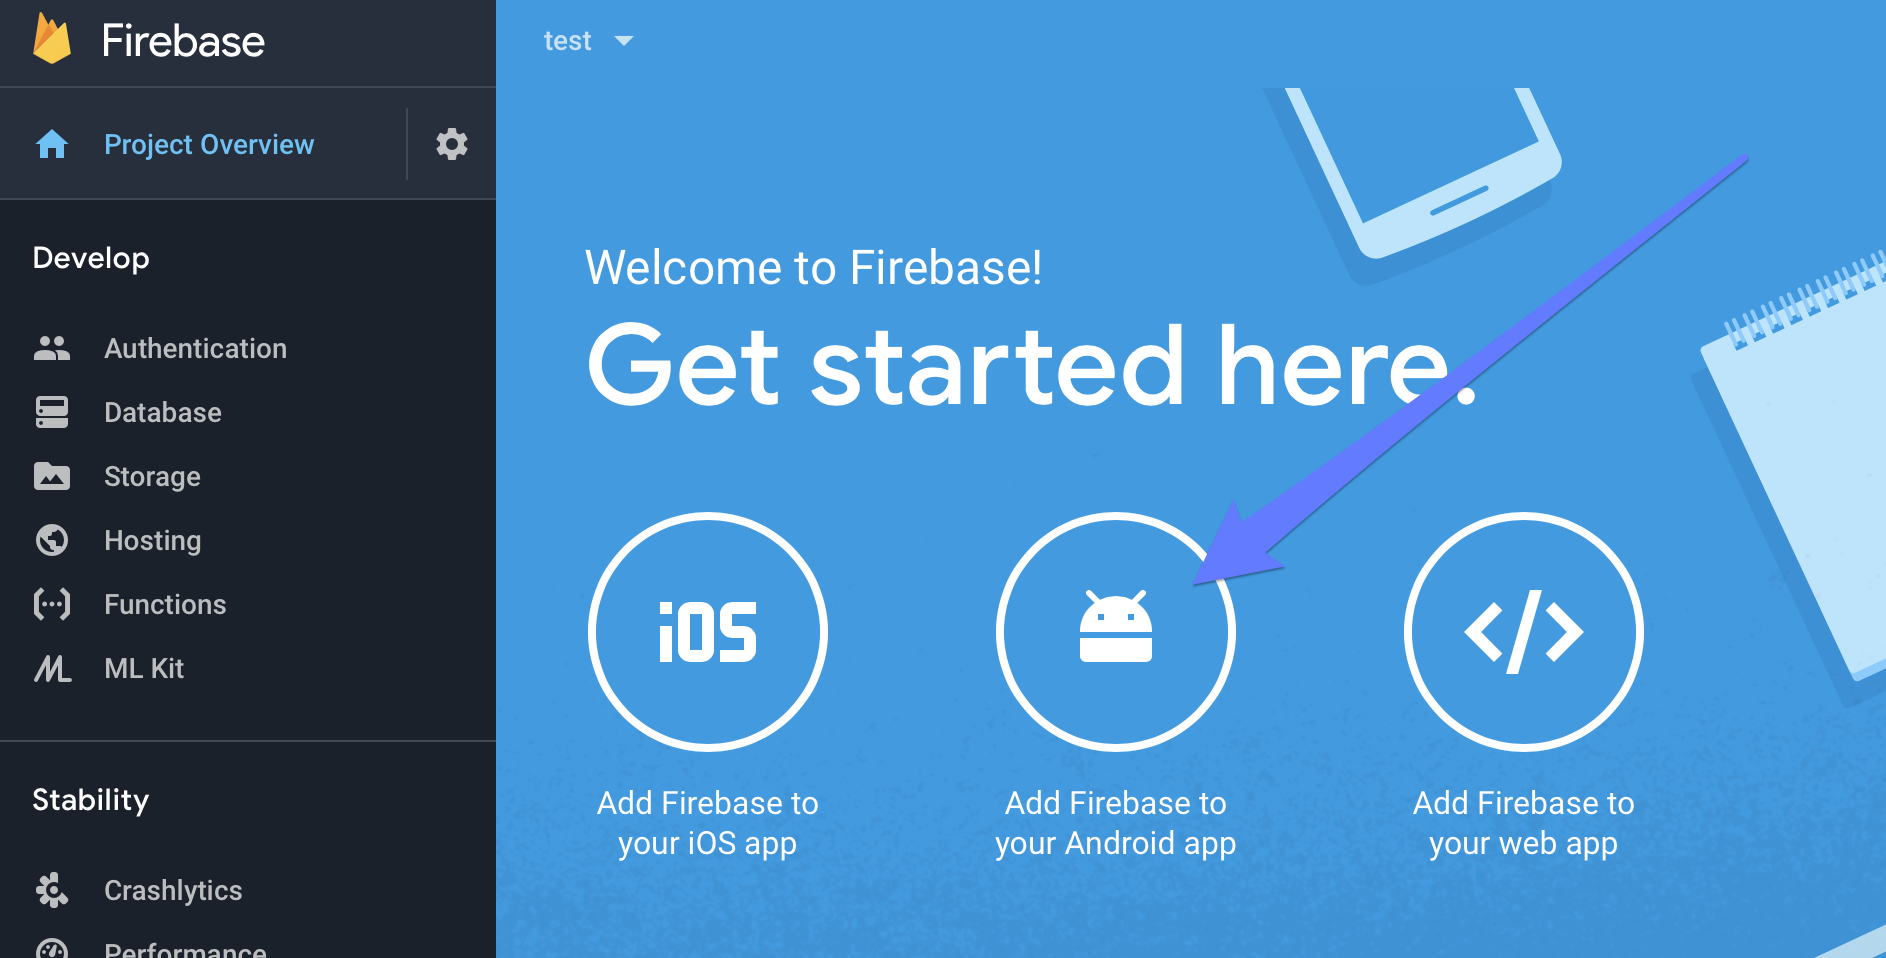 Getting Started screen on Firebase